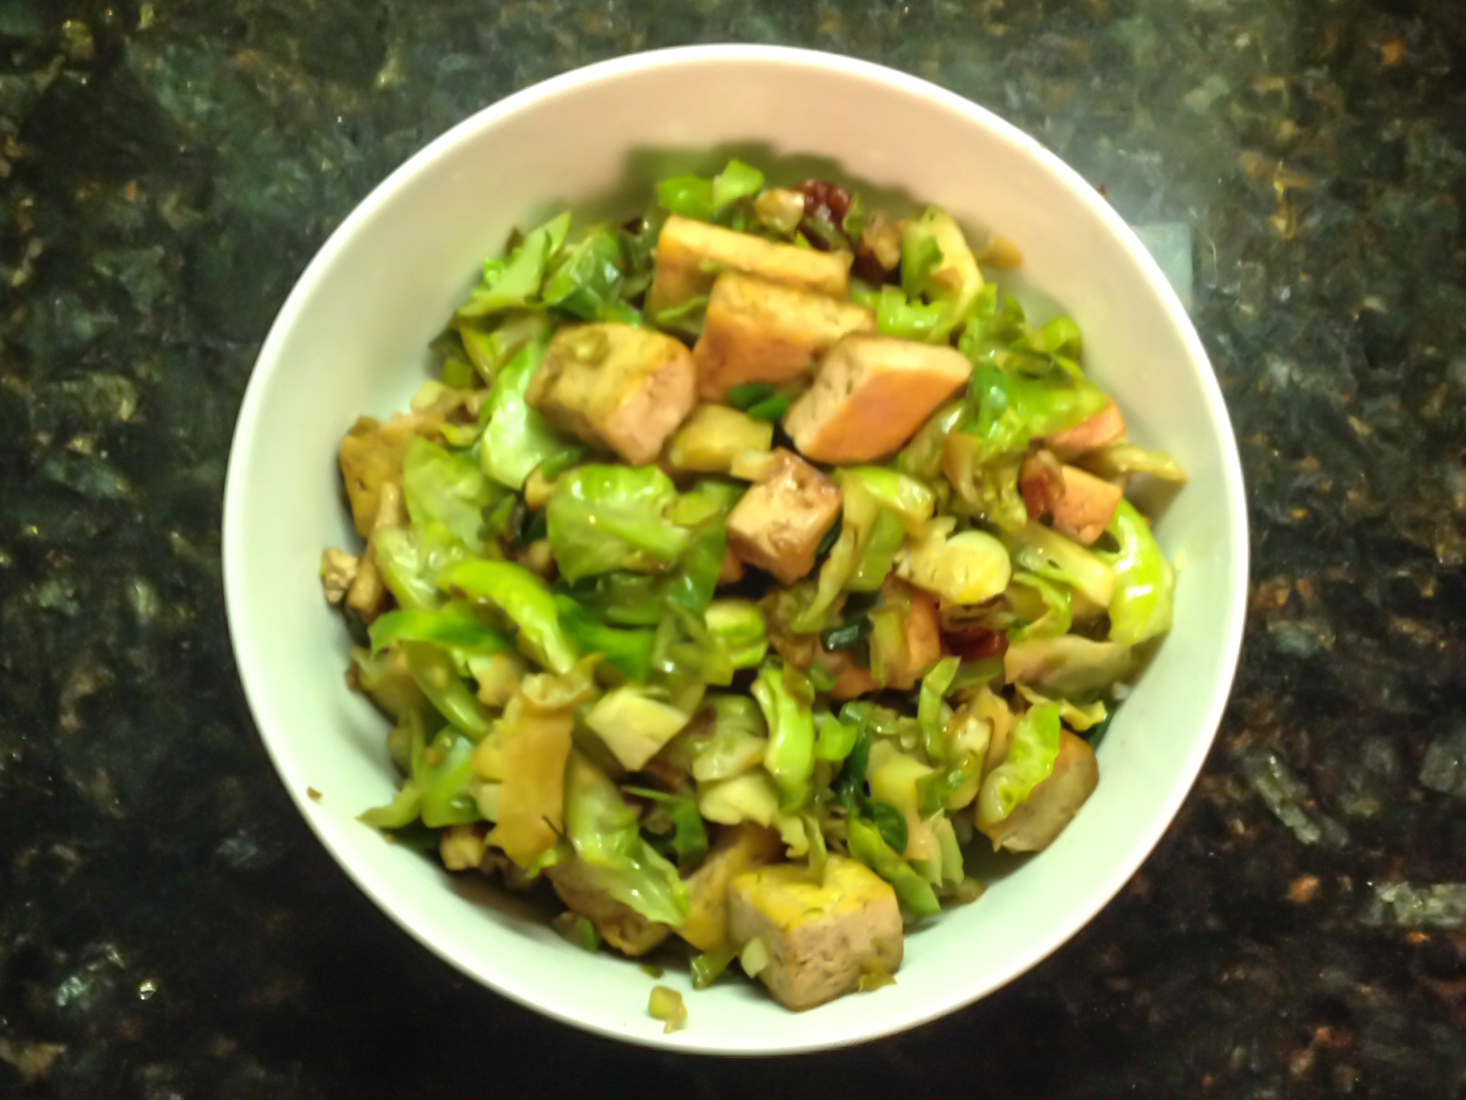 Caramelized Tofu and Brussels Sprouts